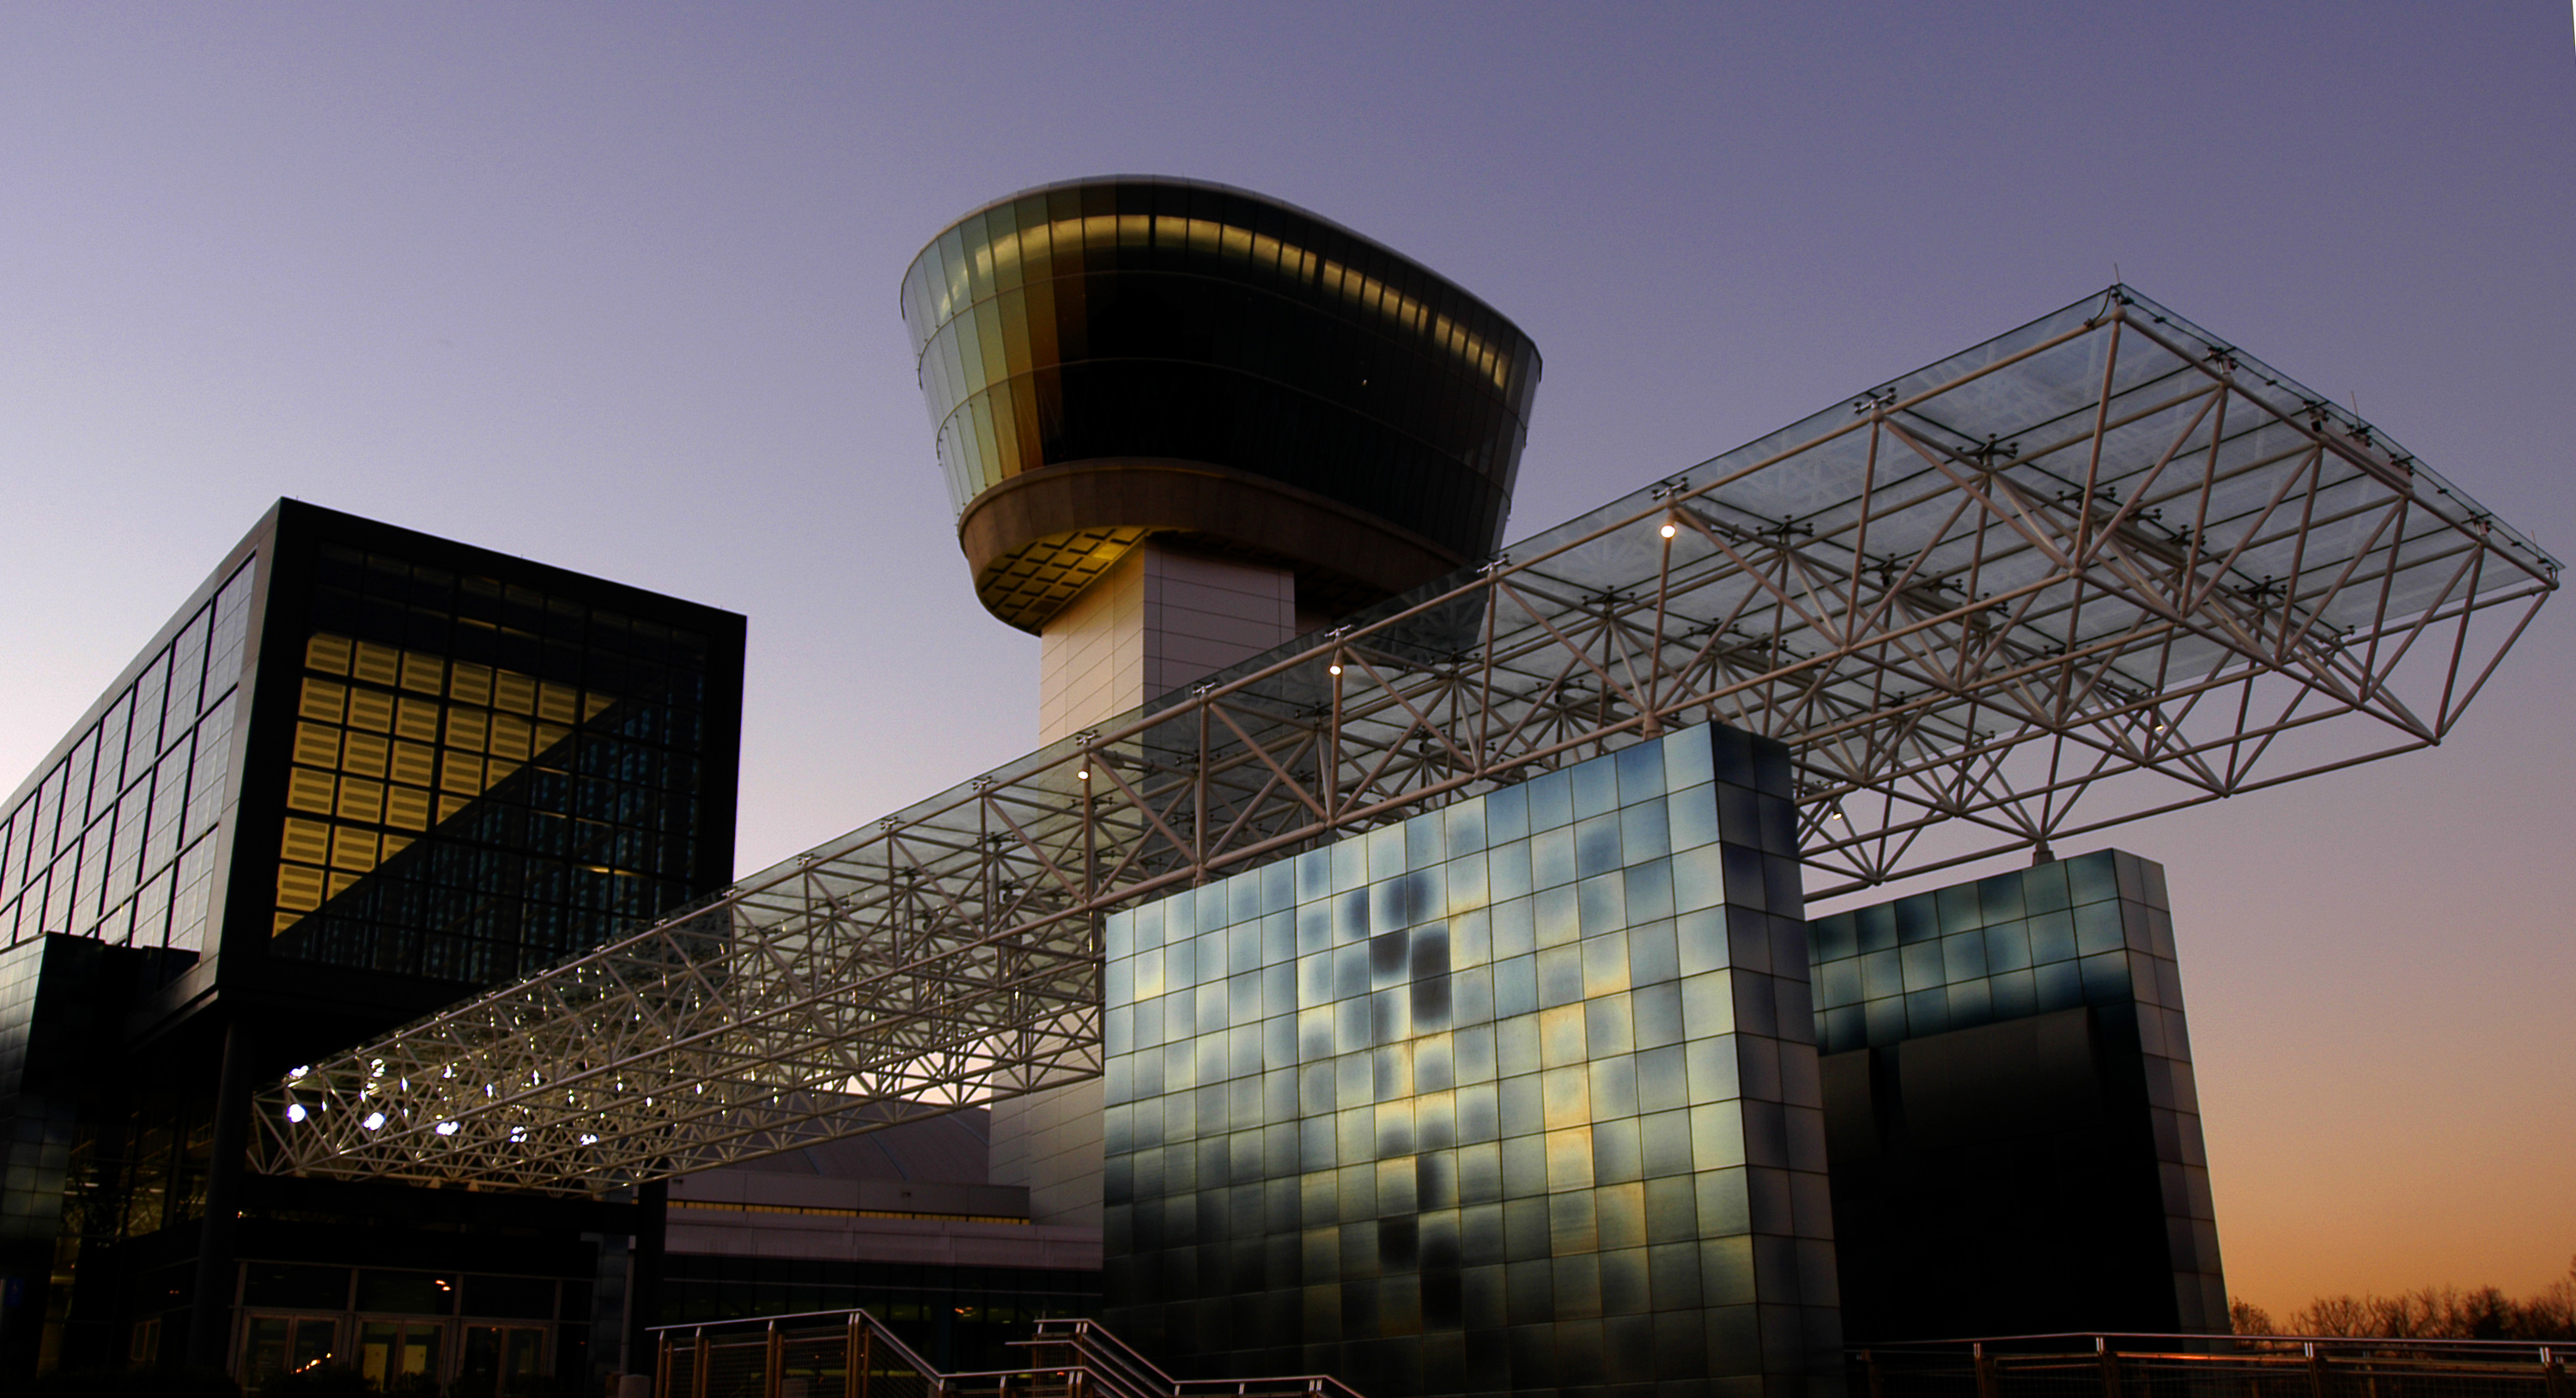 View of the Steven F. Udvar-Hazy Center tower at sunset